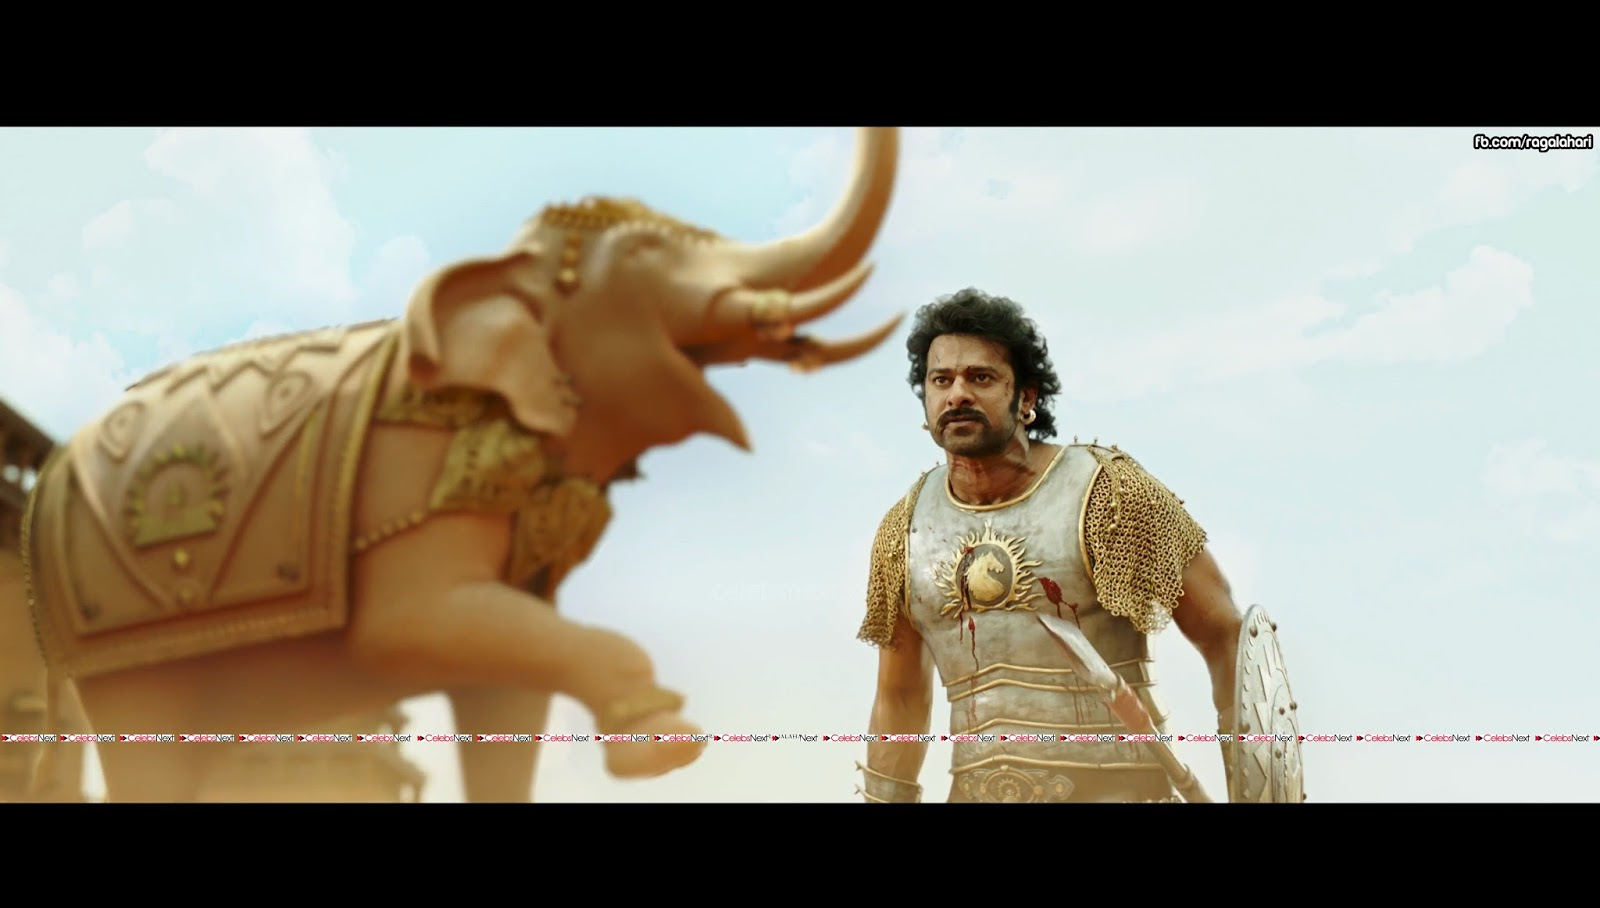 Baahubali 2 4k Movie Stills Exclusive